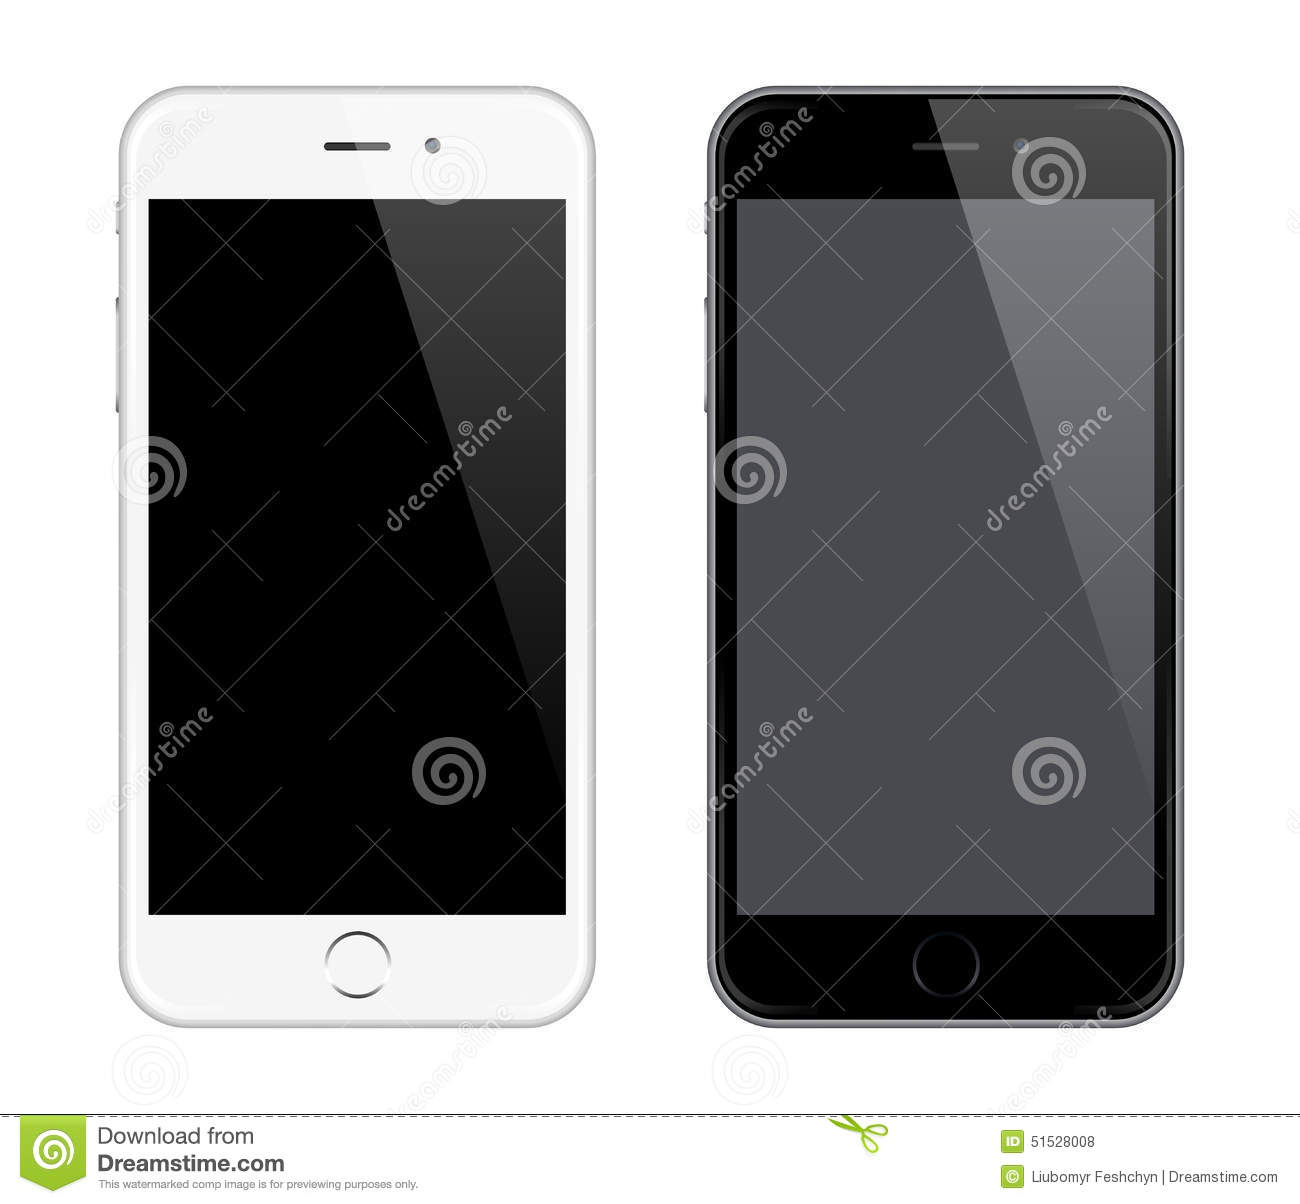 Realistic Vector Mobile Phone Mockup like Iphone Design Style